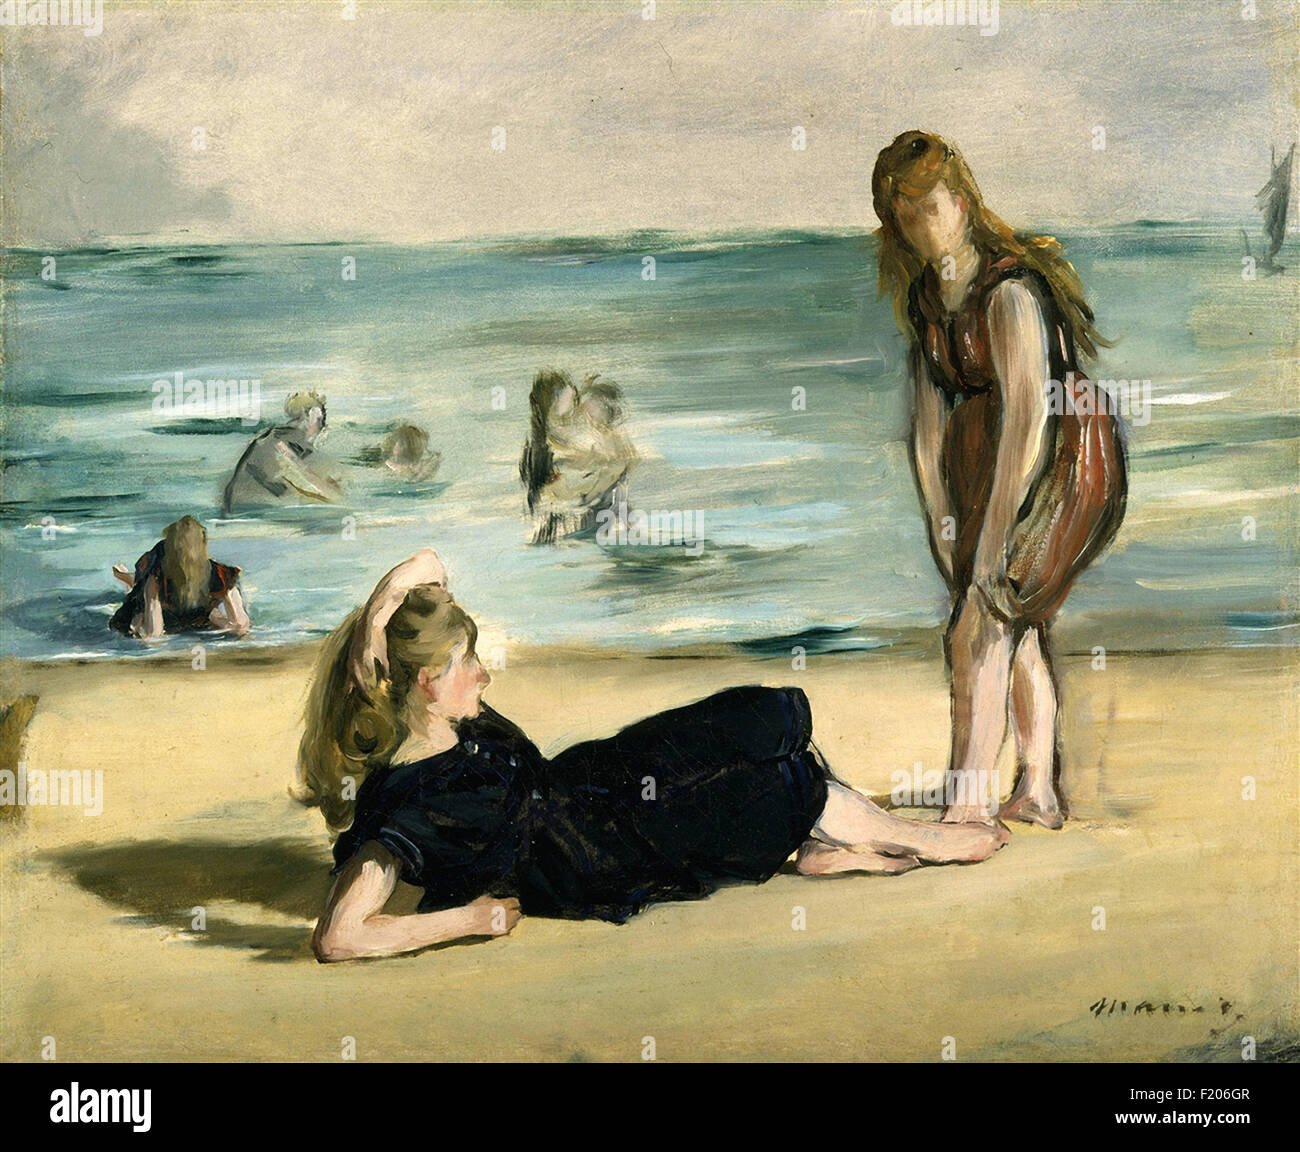 Edouard Manet - On the Beach - Stock Image